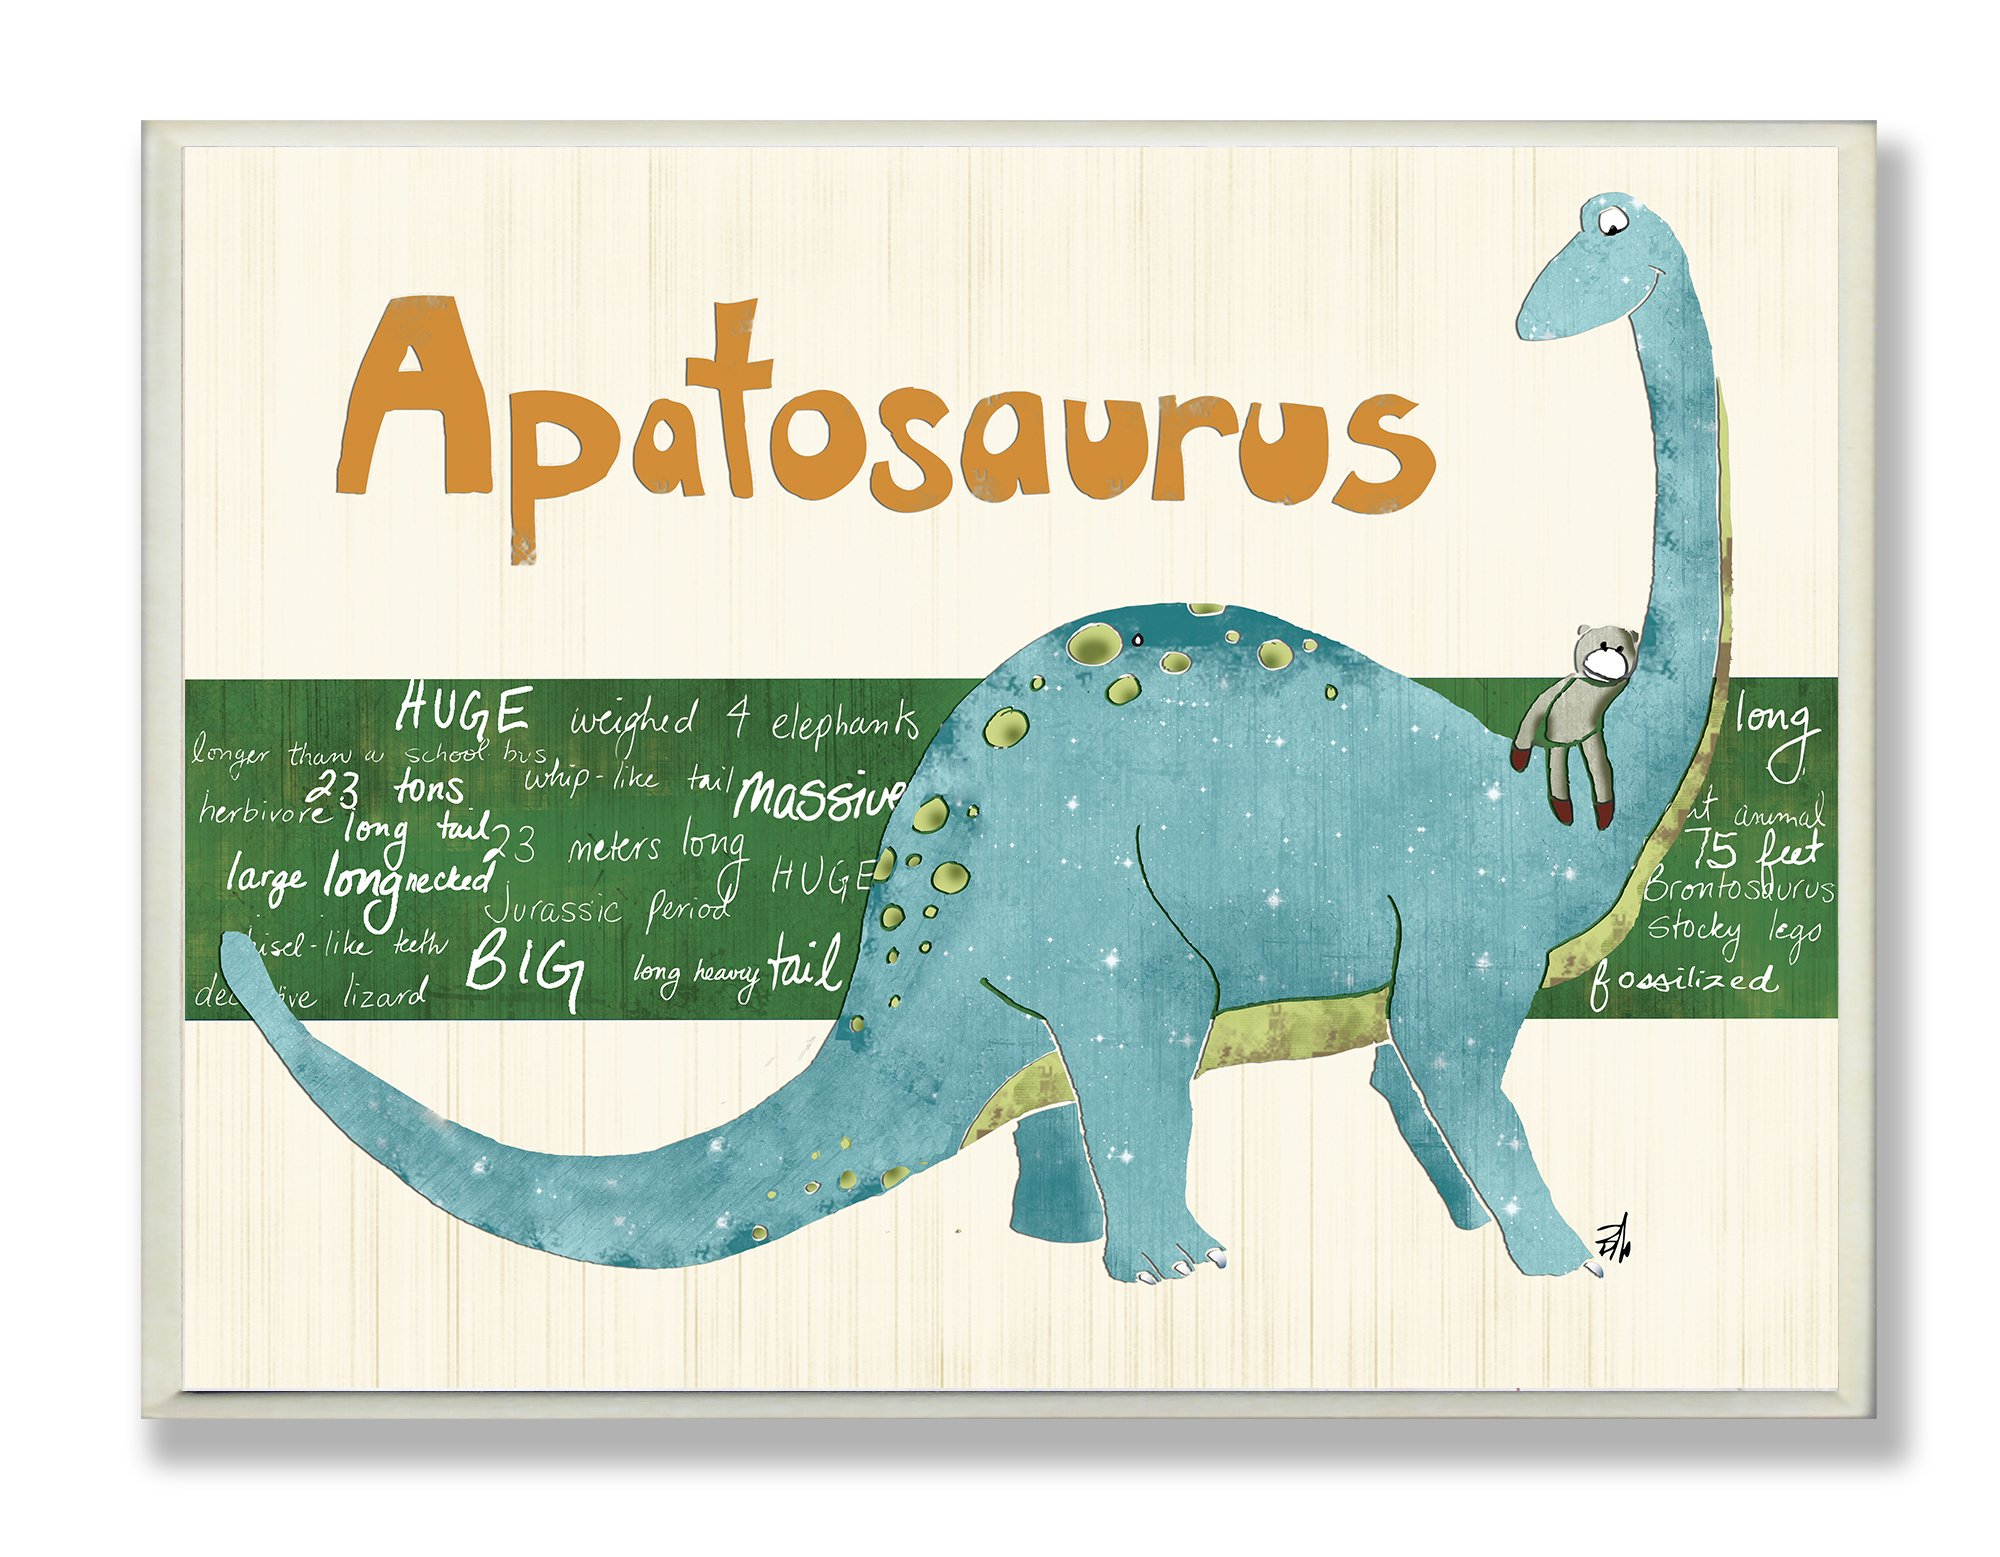 The Kids Room by Stupell Apatosaurus Dinosaur Rectangle Wall Plaque, 11 x 0.5 x 15, Proudly Made in USA by The Kids Room by Stupell